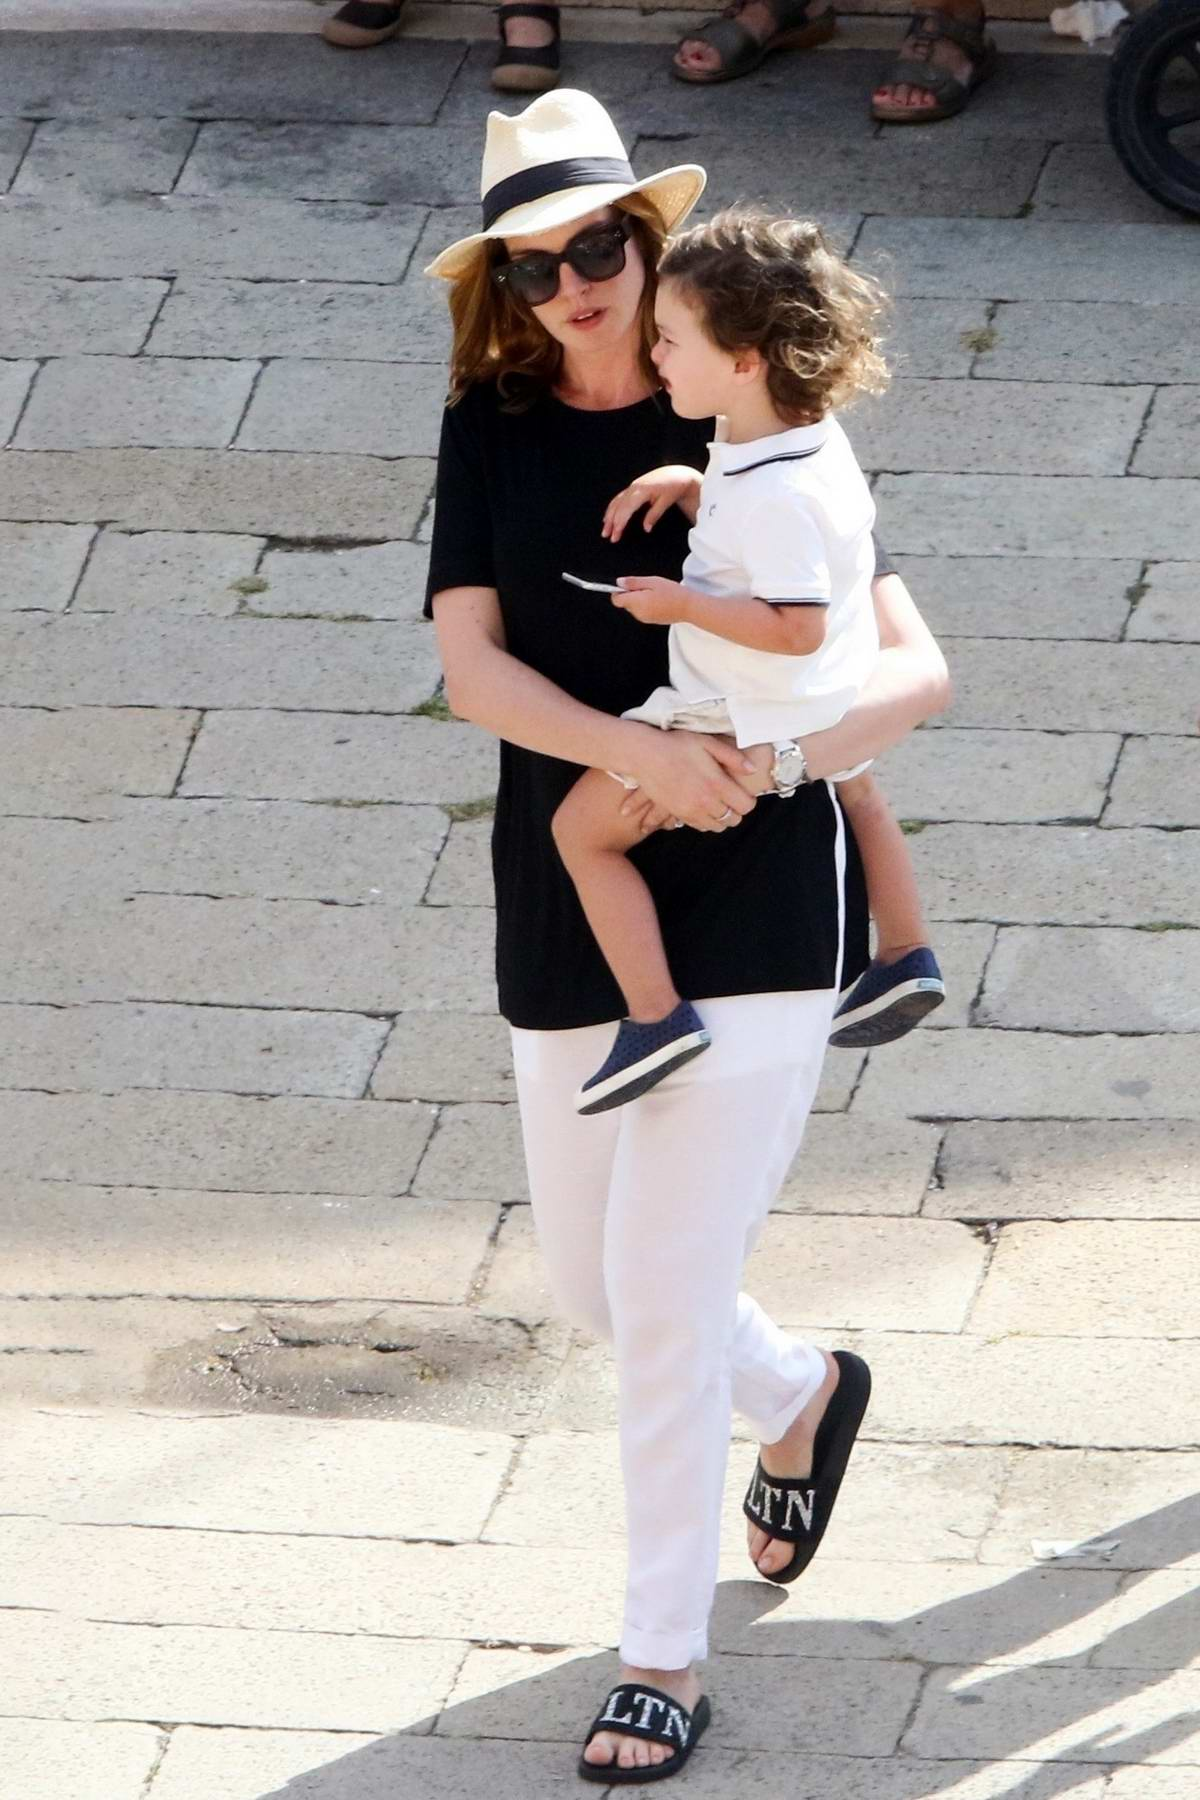 Anne Hathaway enjoys a day out with husband Adam Shulman and their son in Venice, Italy